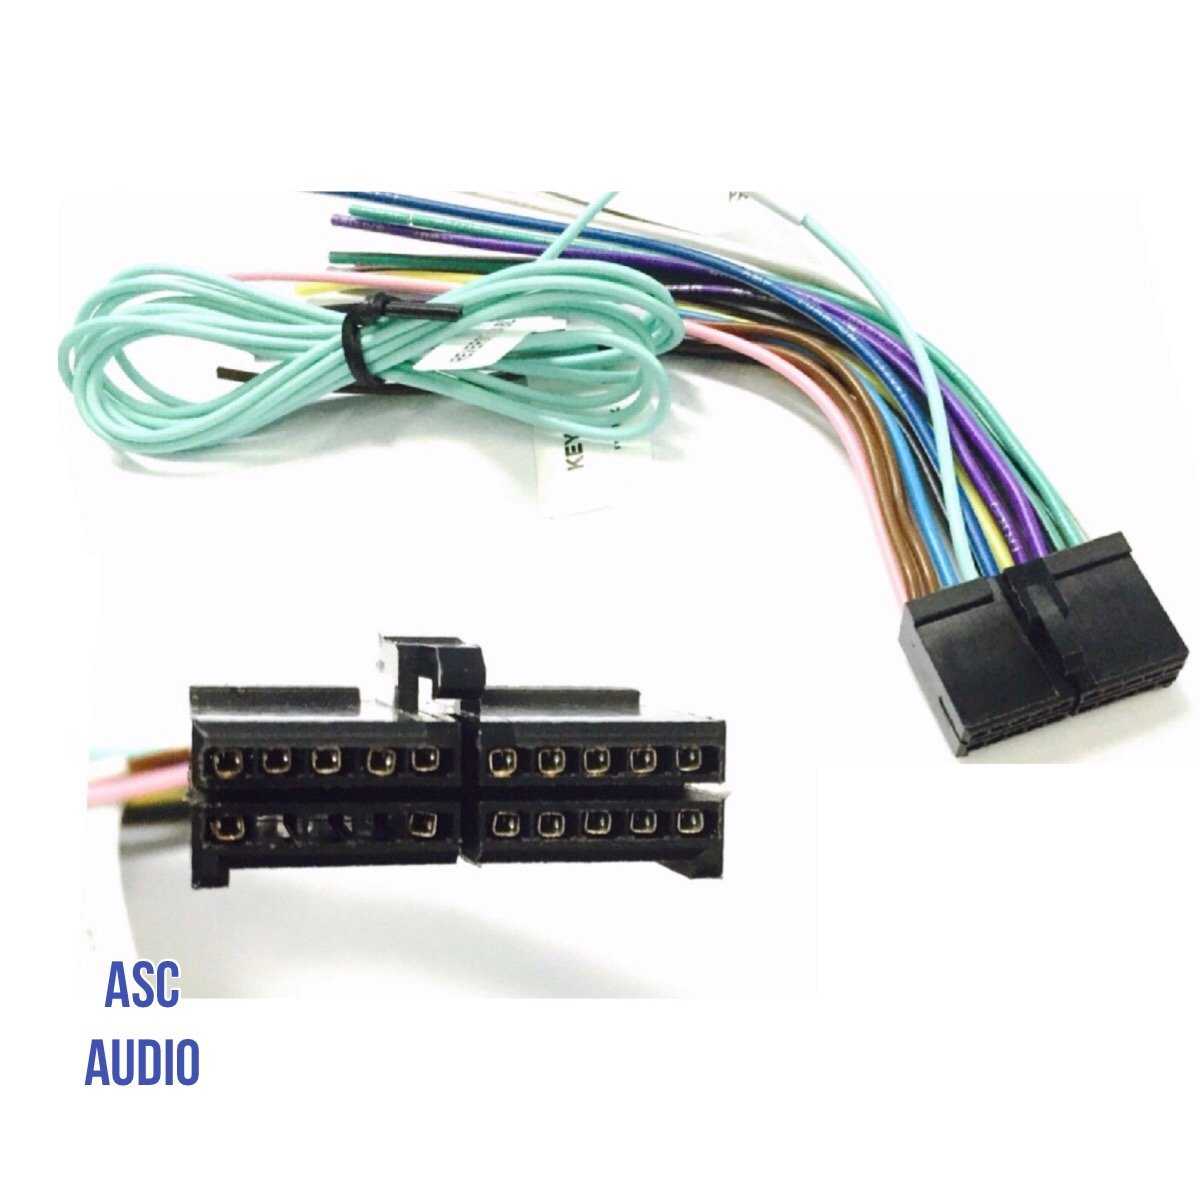 amazon com 16 pin car audio wire harness stereo power plug radio rh amazon com 14 Pin Wire Harness Boss 14 Pin Wire Harness Boss